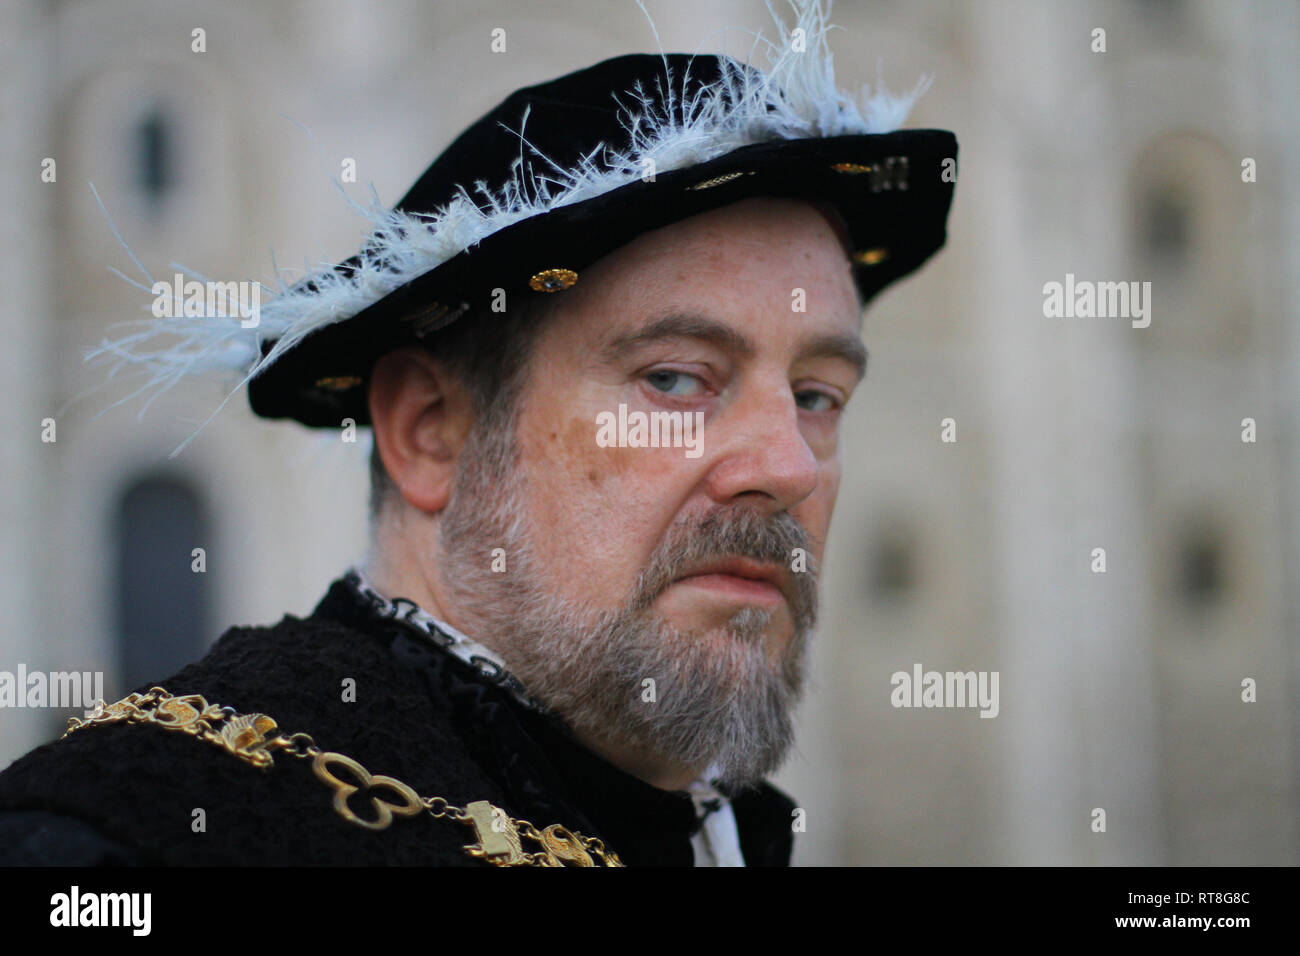 Portrait of a modern day Henry VIII wearing authentic Tudor dress taken at The Tower of London- he is old and has a greying beard and looks scary - Stock Image